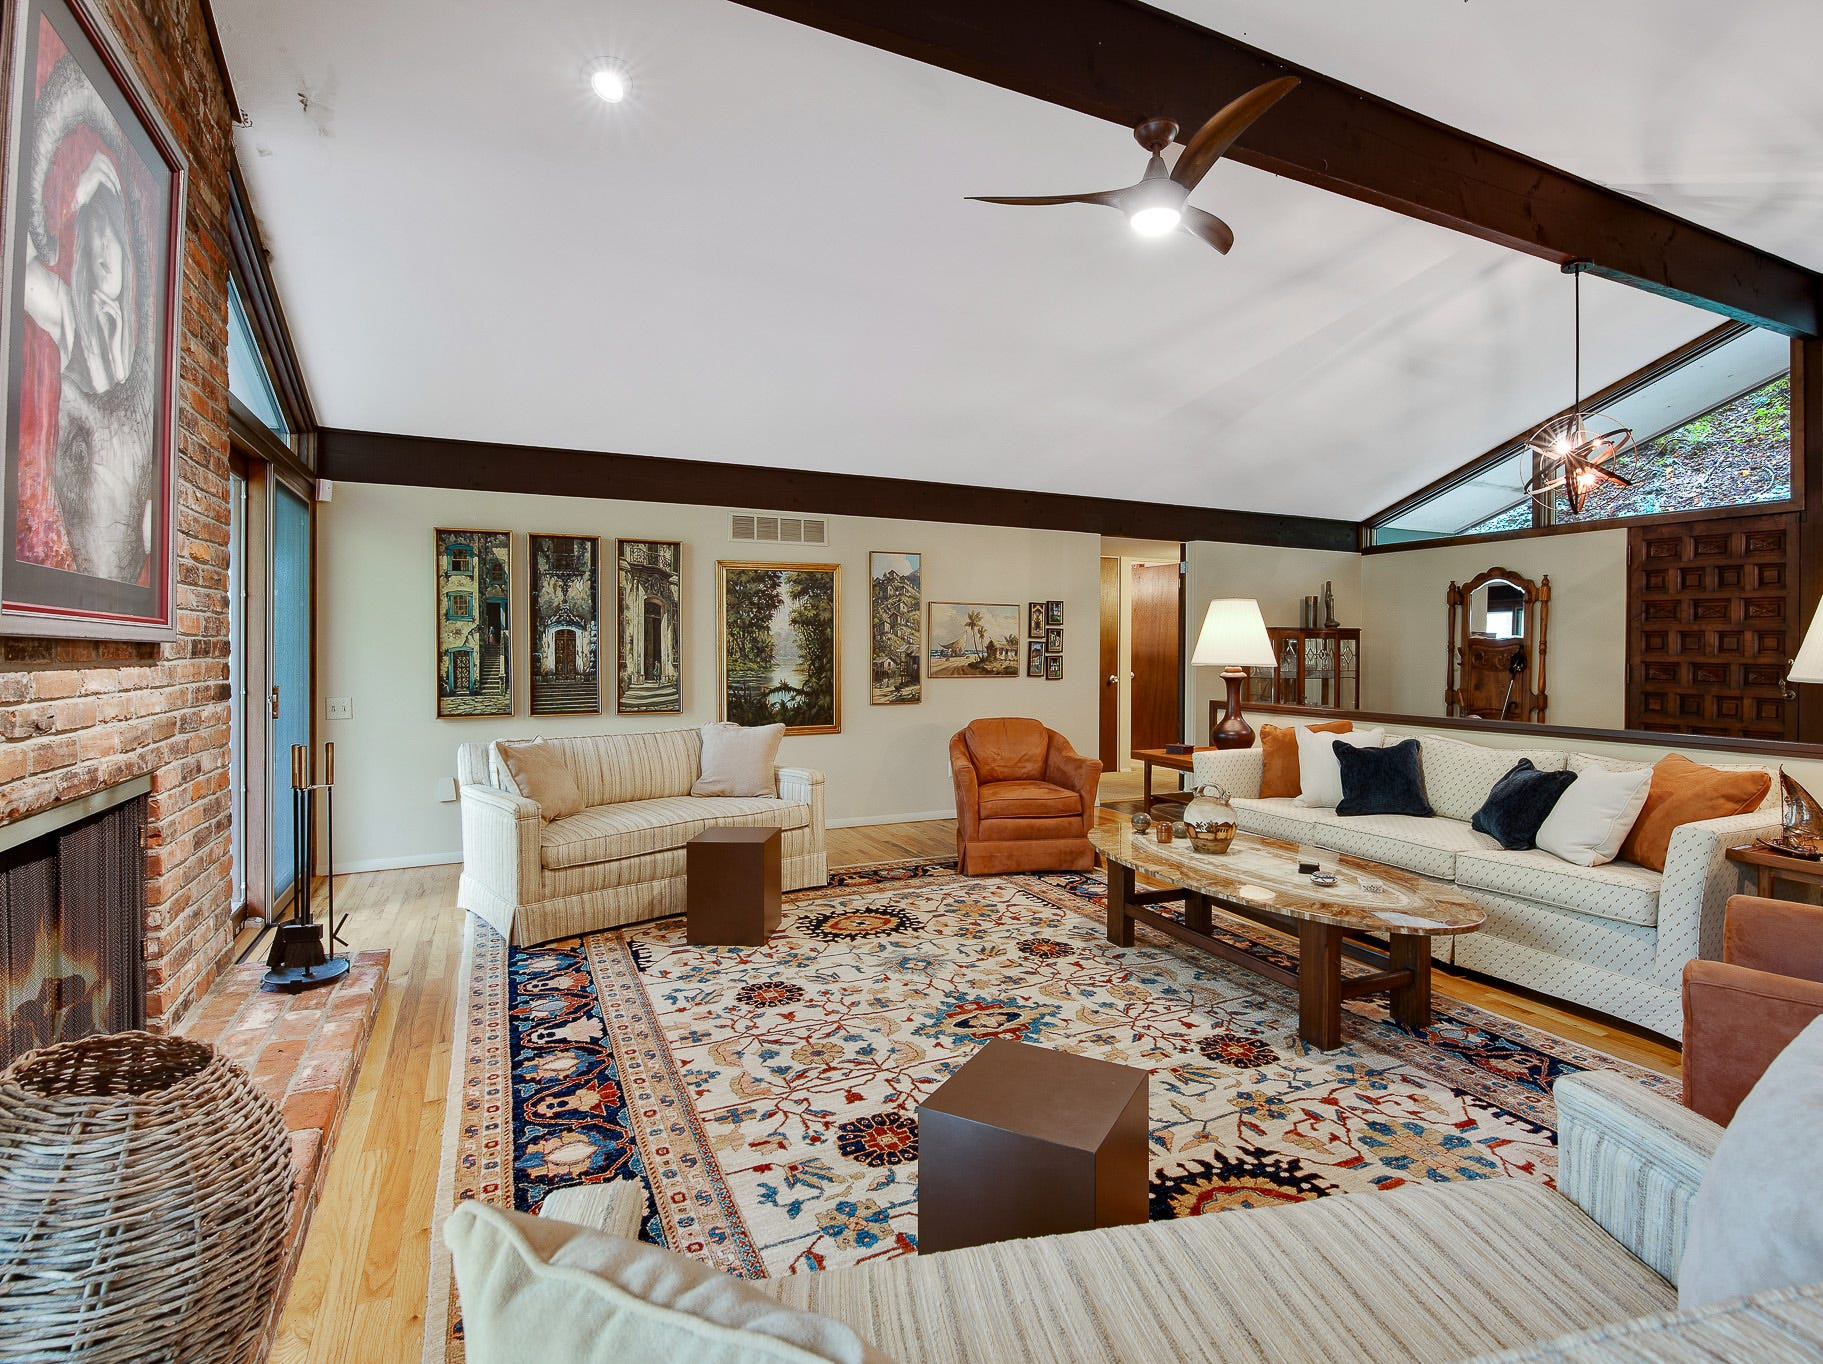 The open living area at 110 Thissell in Greenville has a pitched ceiling and wood moldings.